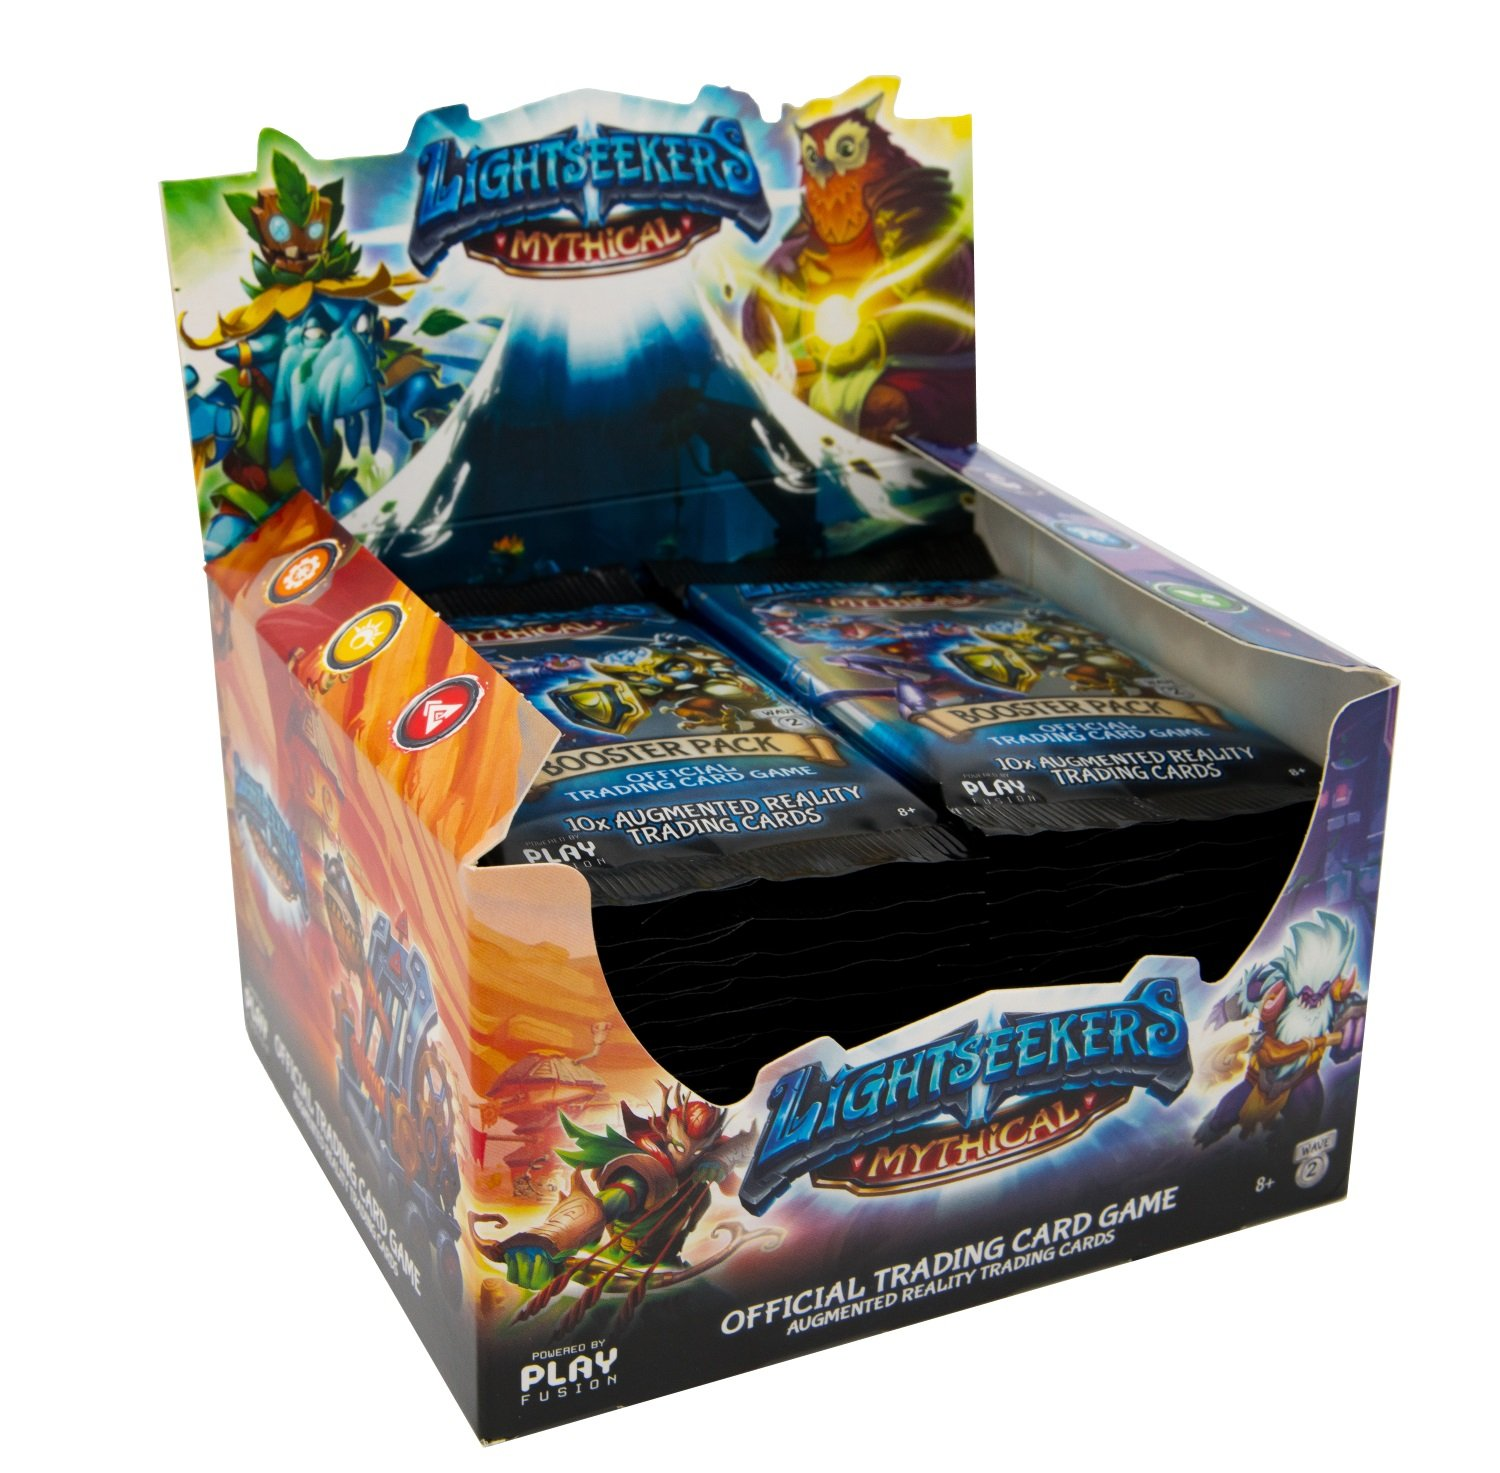 Lightseekers Mythical Booster Display 40 Qty PlayFusion PLFL82001